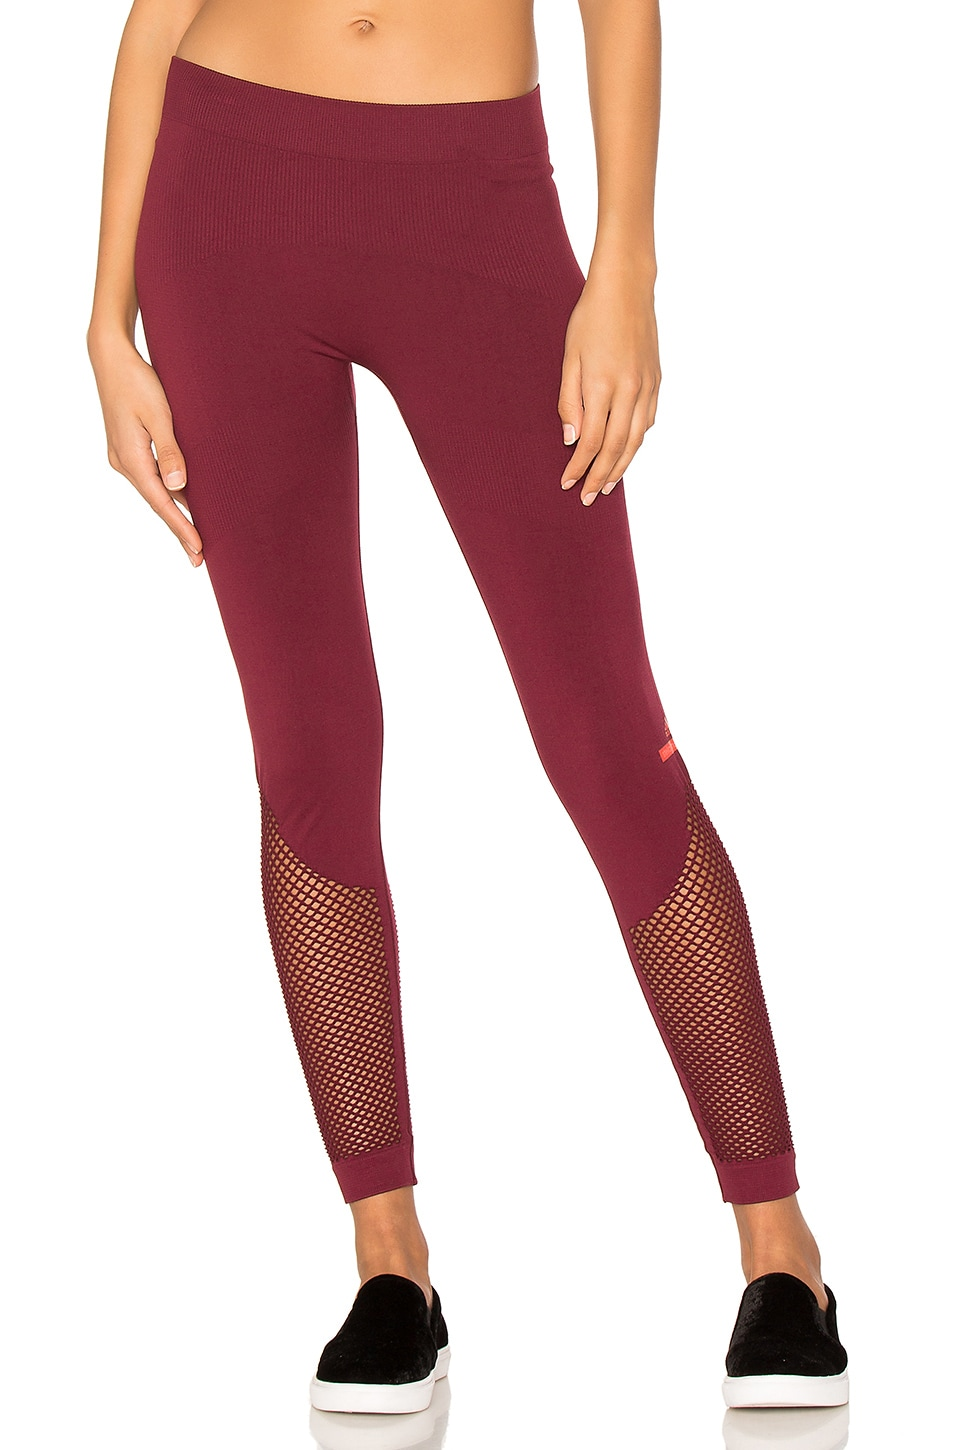 adidas by Stella McCartney The Seamless Mesh Tight in Cherry Wood